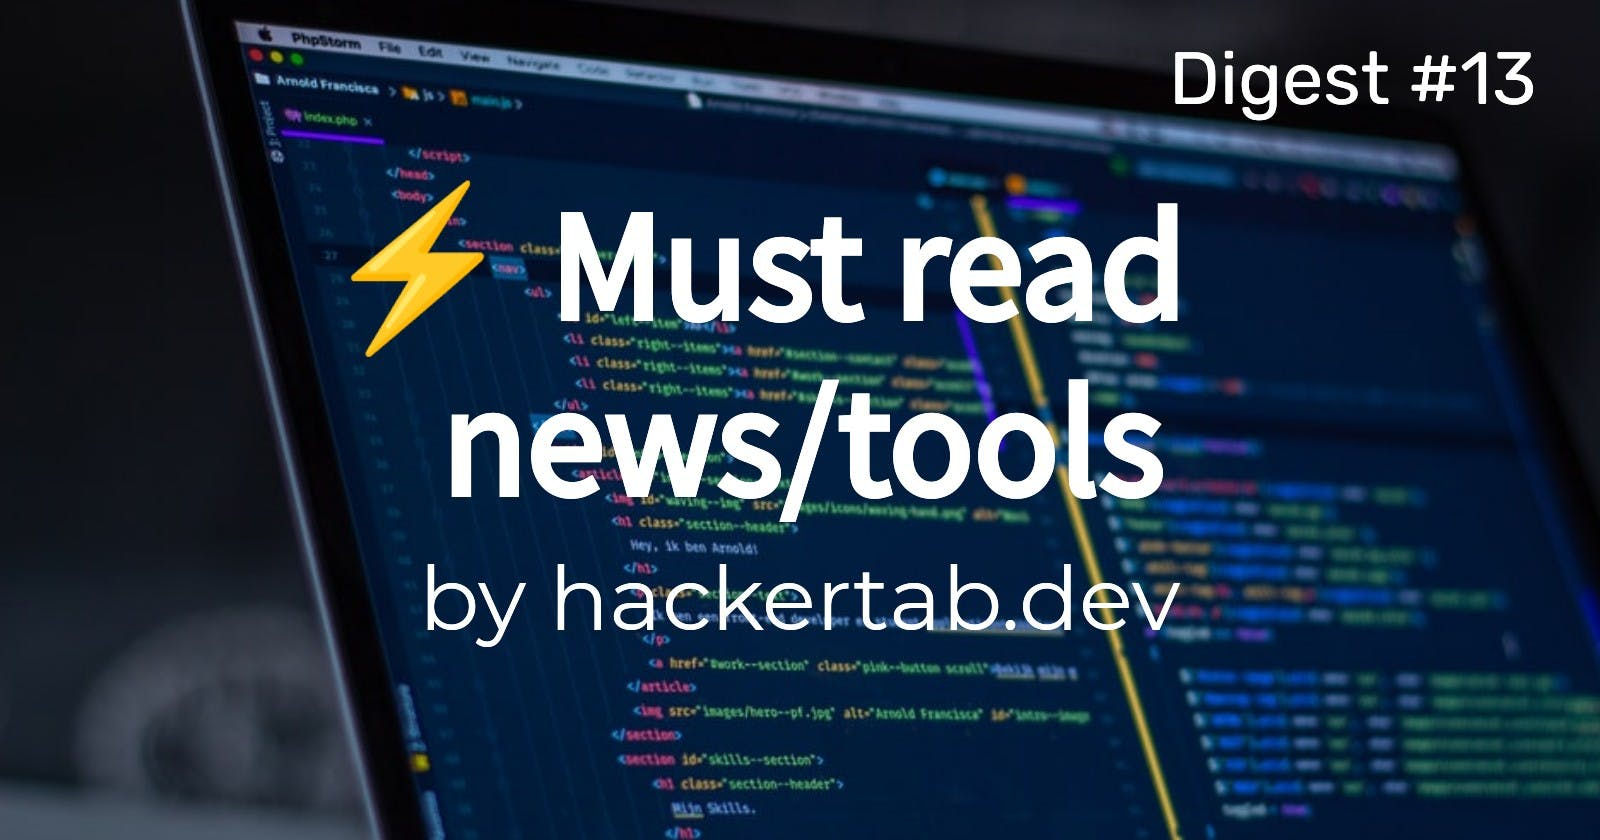 ⚡ Must read Tech news/tools of the day - Digest #13